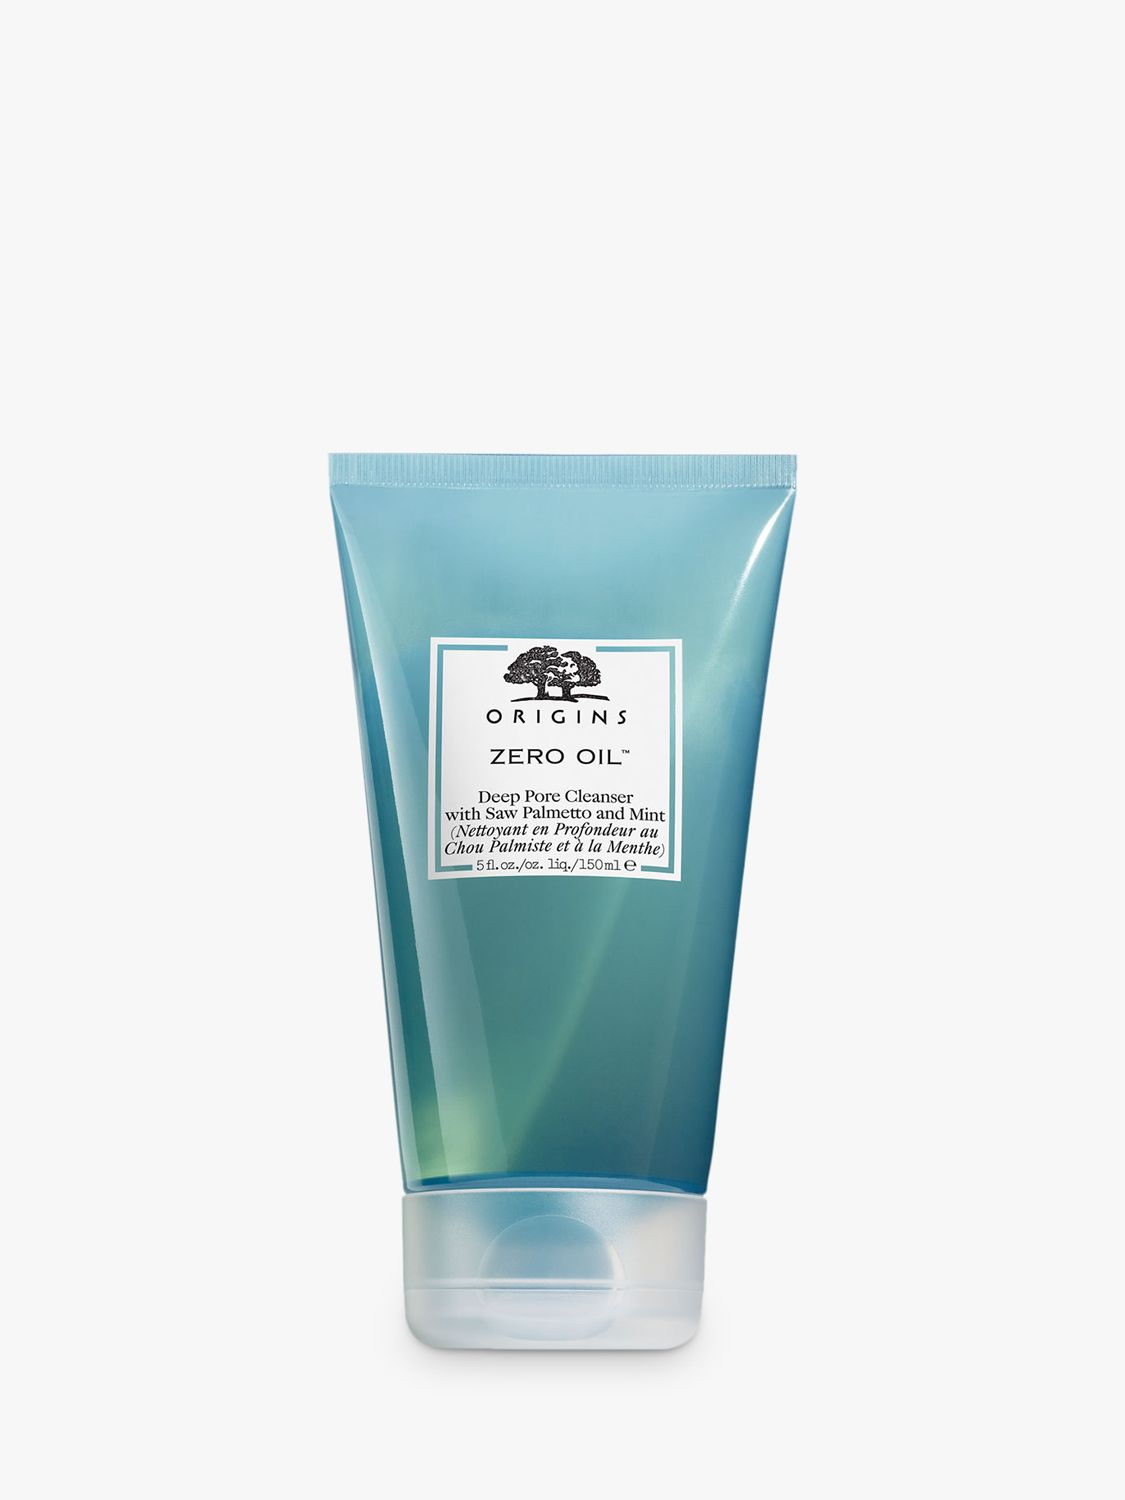 Origins Origins Zero Oil™ Deep Pore Cleanser with Saw Palmetto and Mint, 150ml